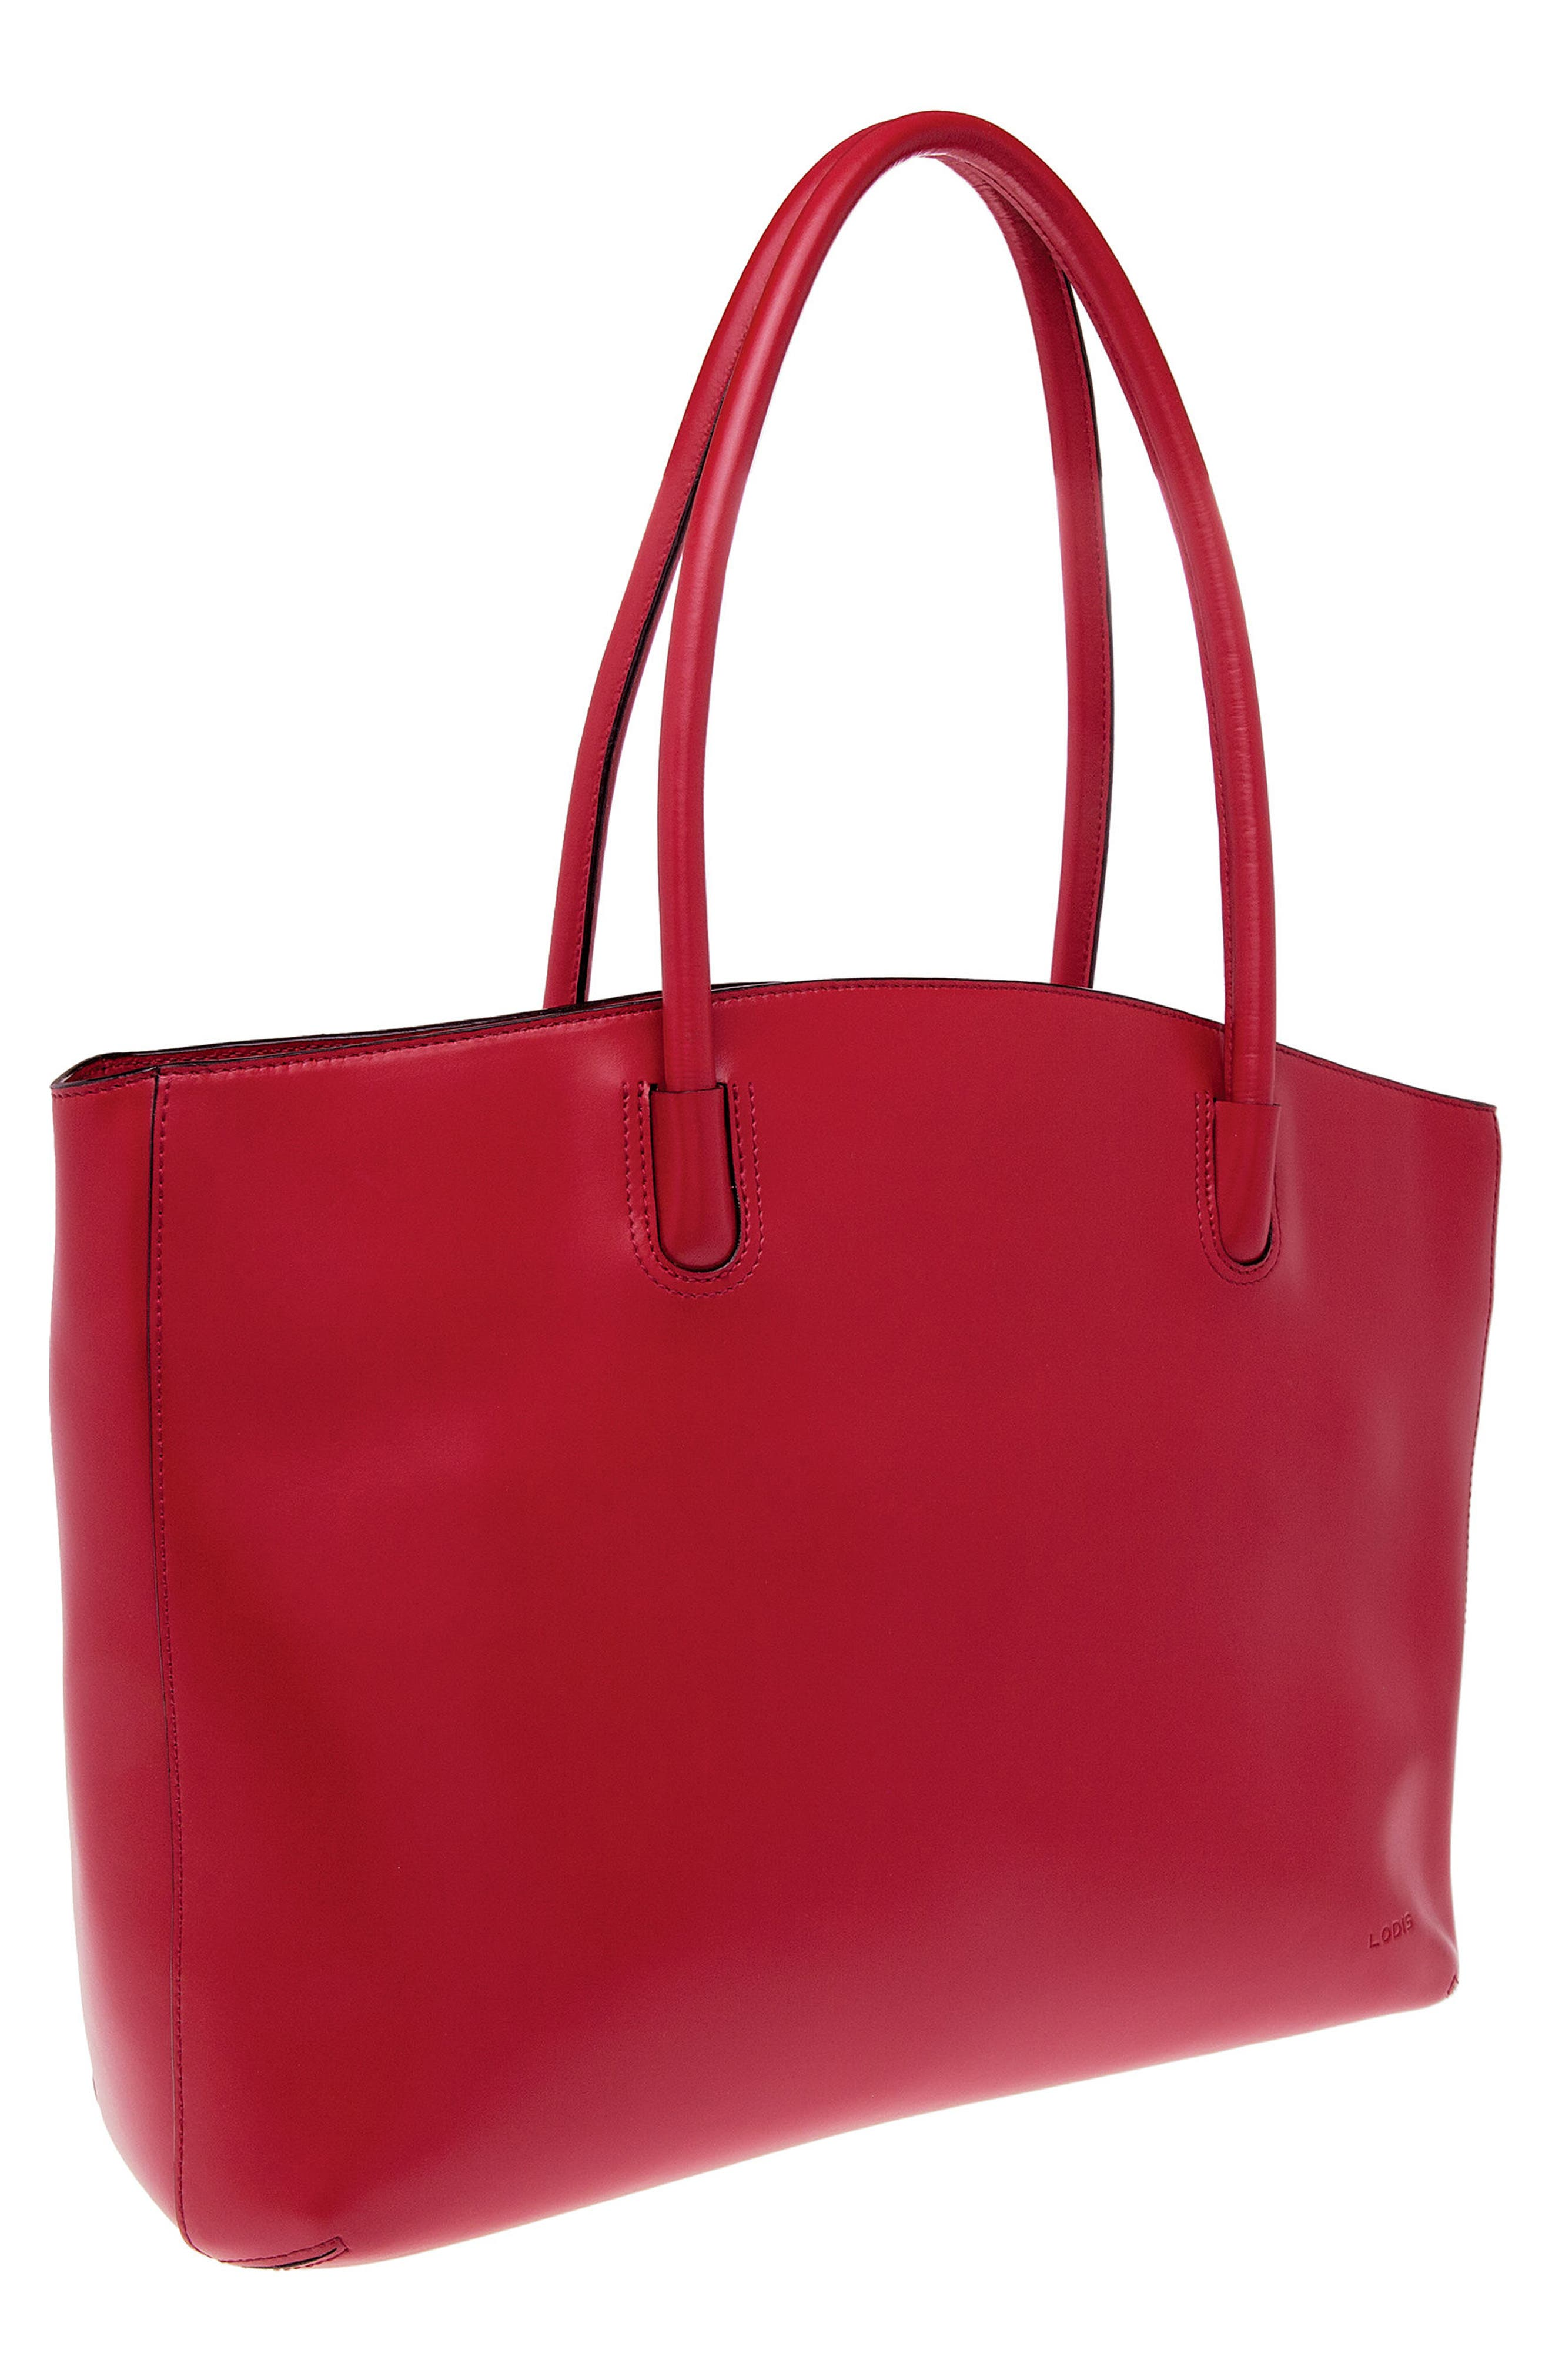 Audrey Under Lock & Key - Milano RFID Leather Tote,                             Alternate thumbnail 4, color,                             Red